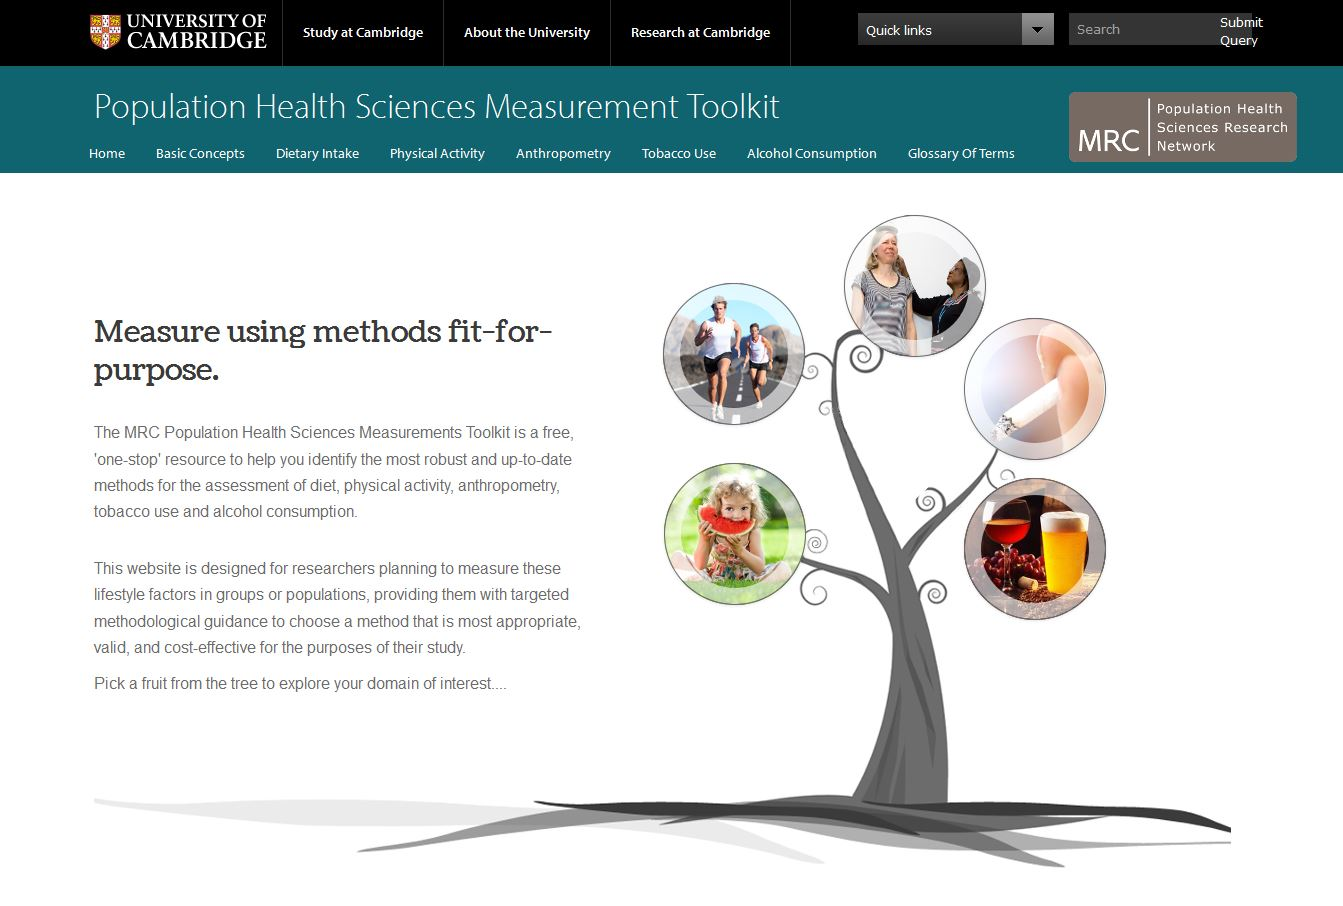 Population Health Sciences Measurement Toolkit's image